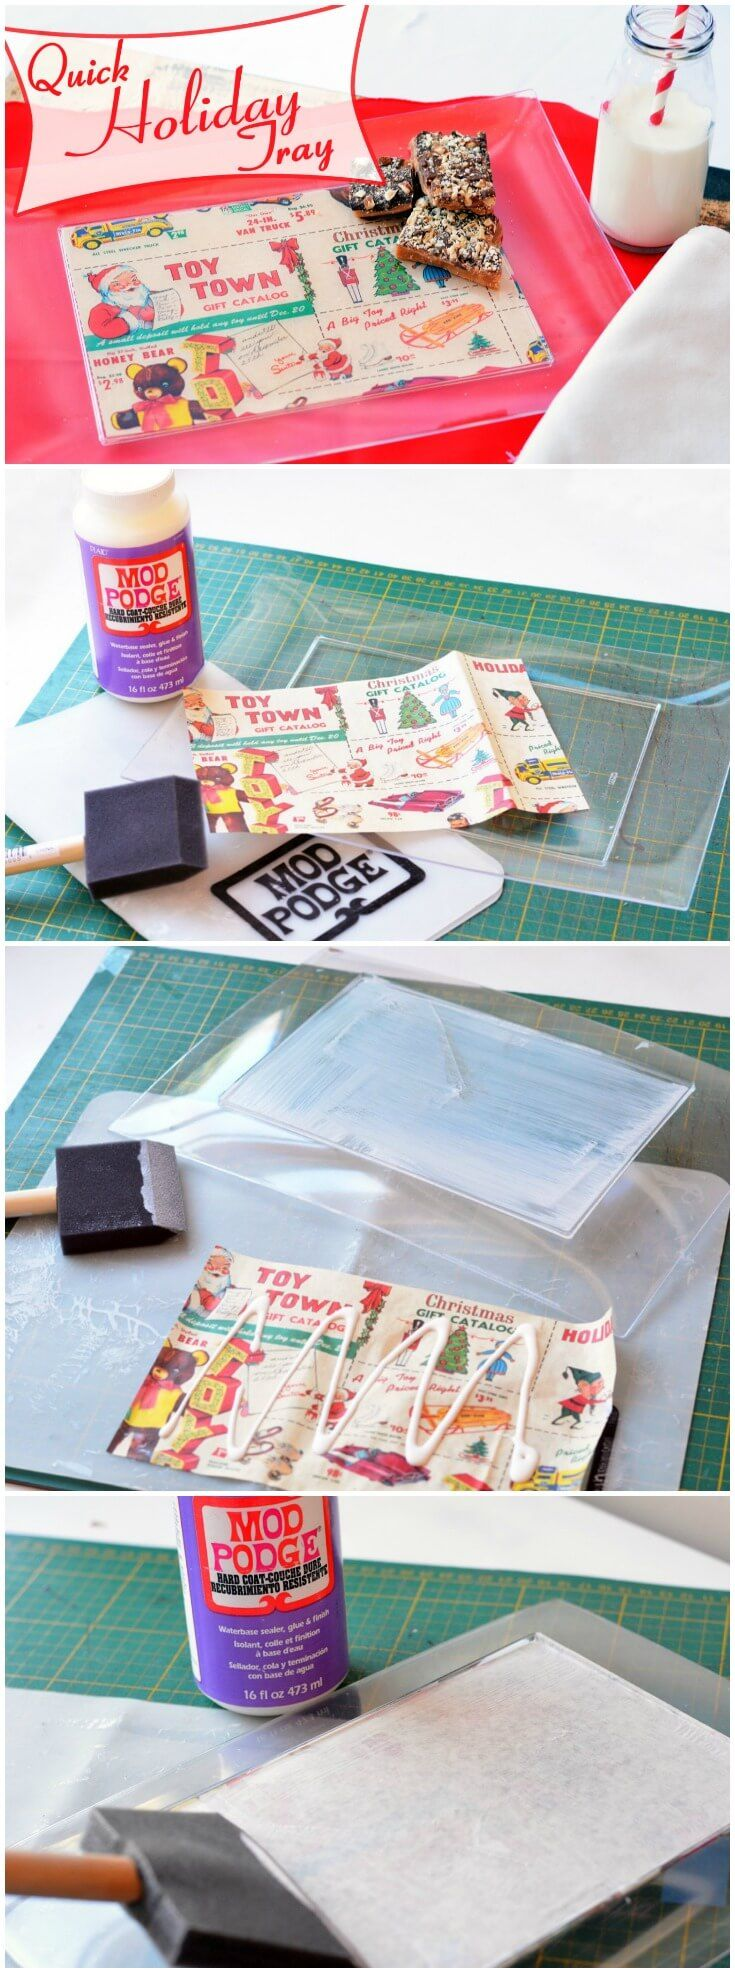 This last minute holiday tray is the perfect budget craft! The trays are from the dollar store - just add paper and Mod Podge. via @modpodgerocks